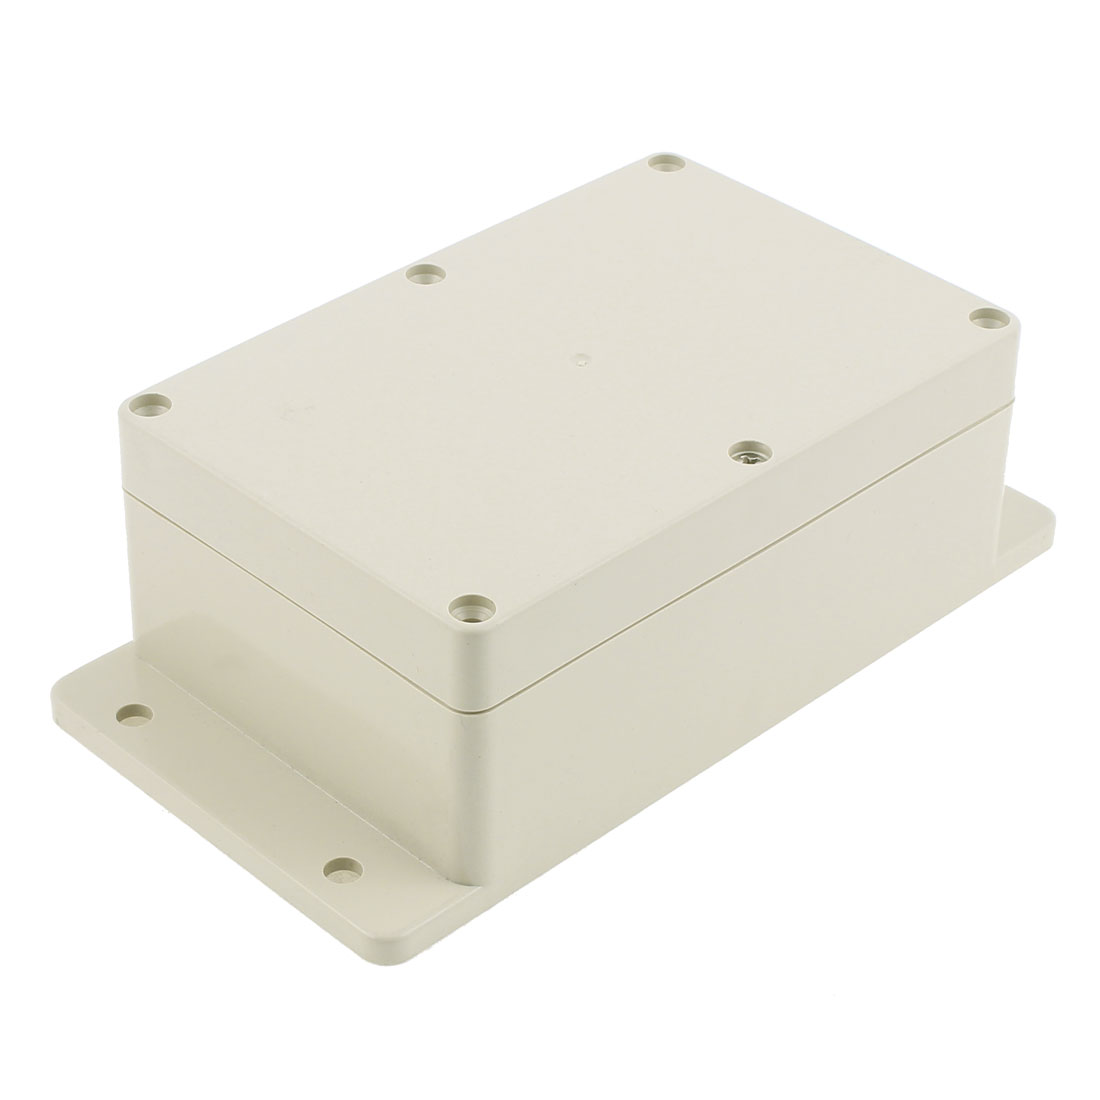 192 x 100 x 62mm Dustproof IP65 Junction Box Terminal Connecting Box Enclosure